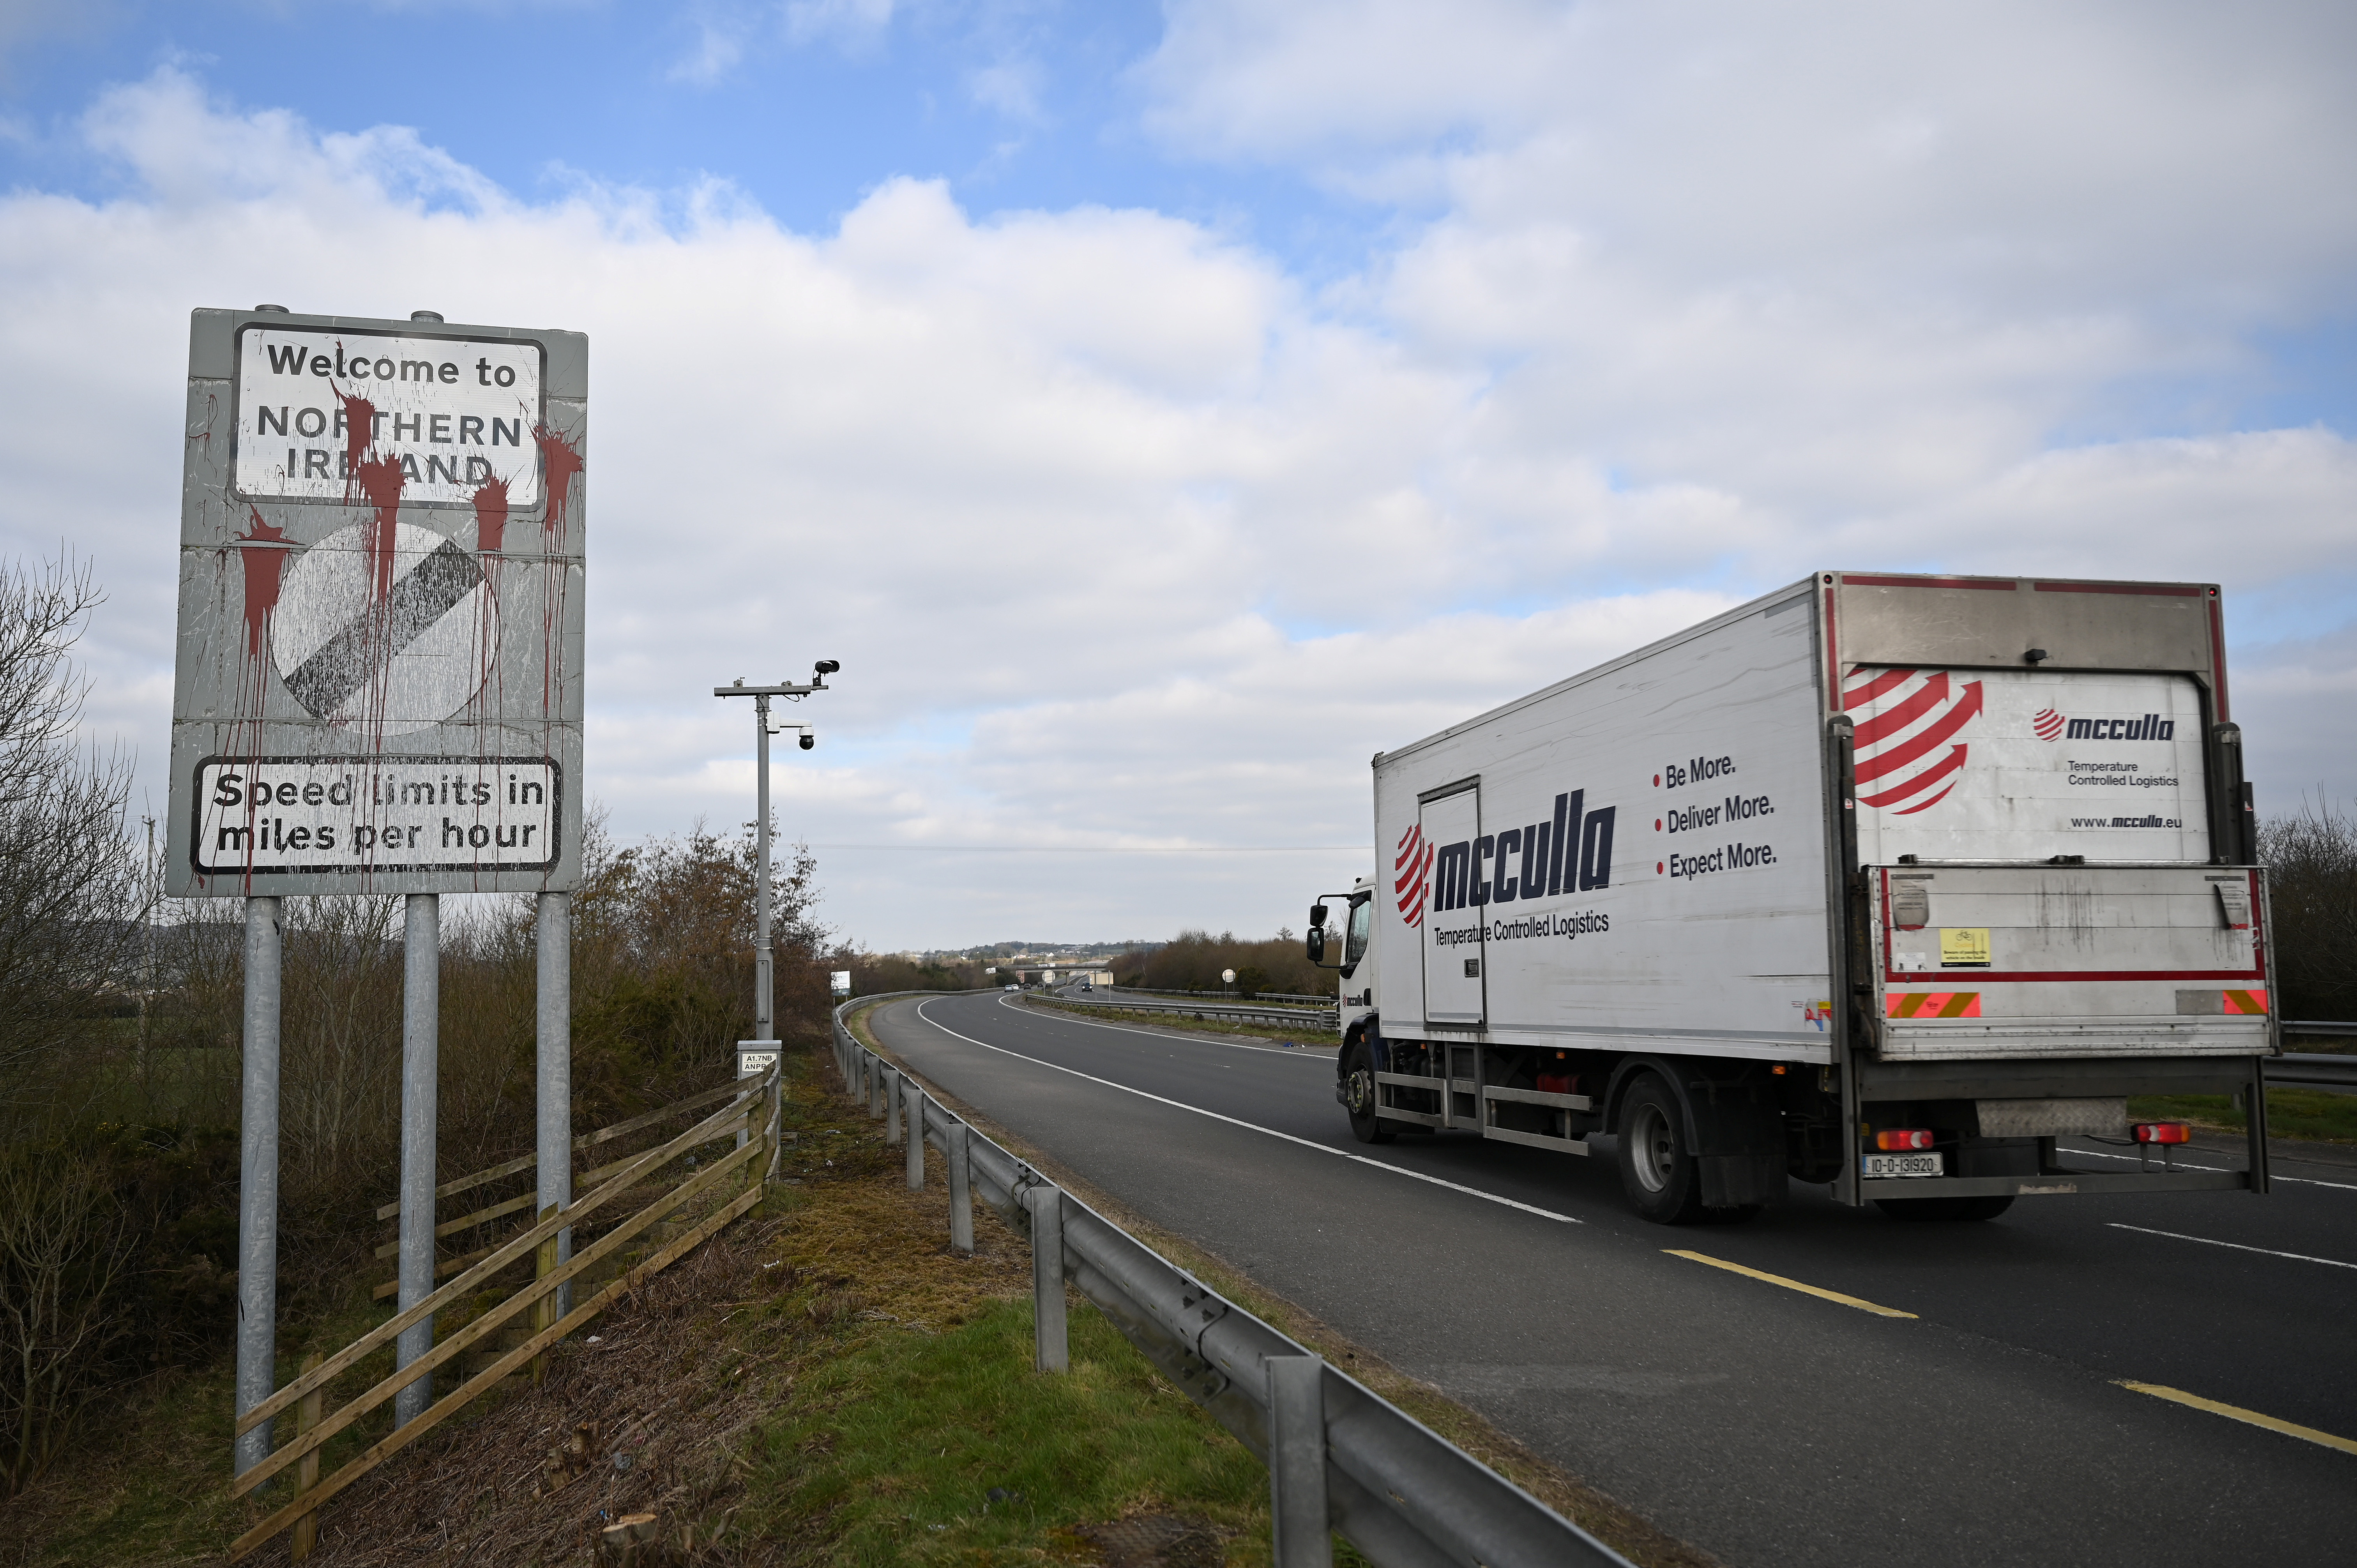 A truck drives past a defaced 'Welcome to Northern Ireland' sign on the Ireland and Northern Ireland border reminding motorists that the speed limits will change from kilometres per hour to miles per hour on the border in Carrickcarnan, Ireland, March 6, 2021. Picture taken March 6, 2021. REUTERS/Clodagh Kilcoyne